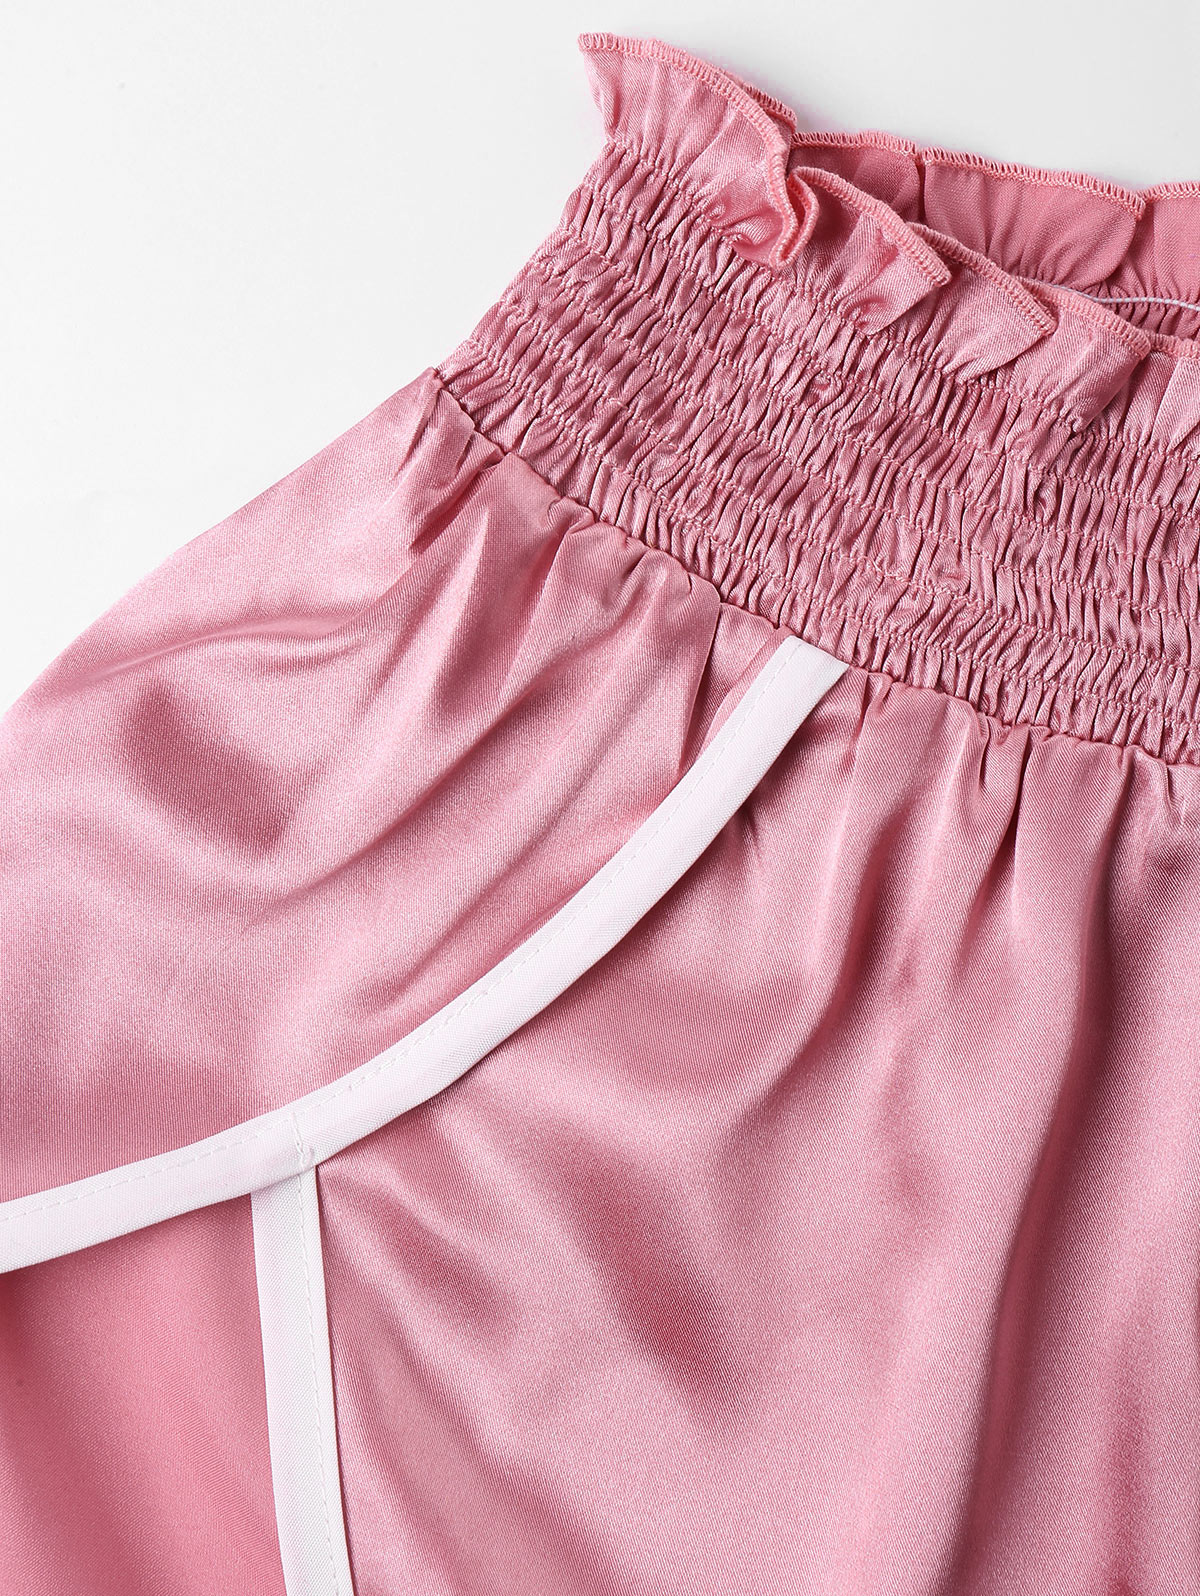 wholesale High Cut Shorts Two Piece Set Color Patchwork Halter Strap Camis Cropped Top Ruffles Shorts Girl Beach Suit Sweet Pink